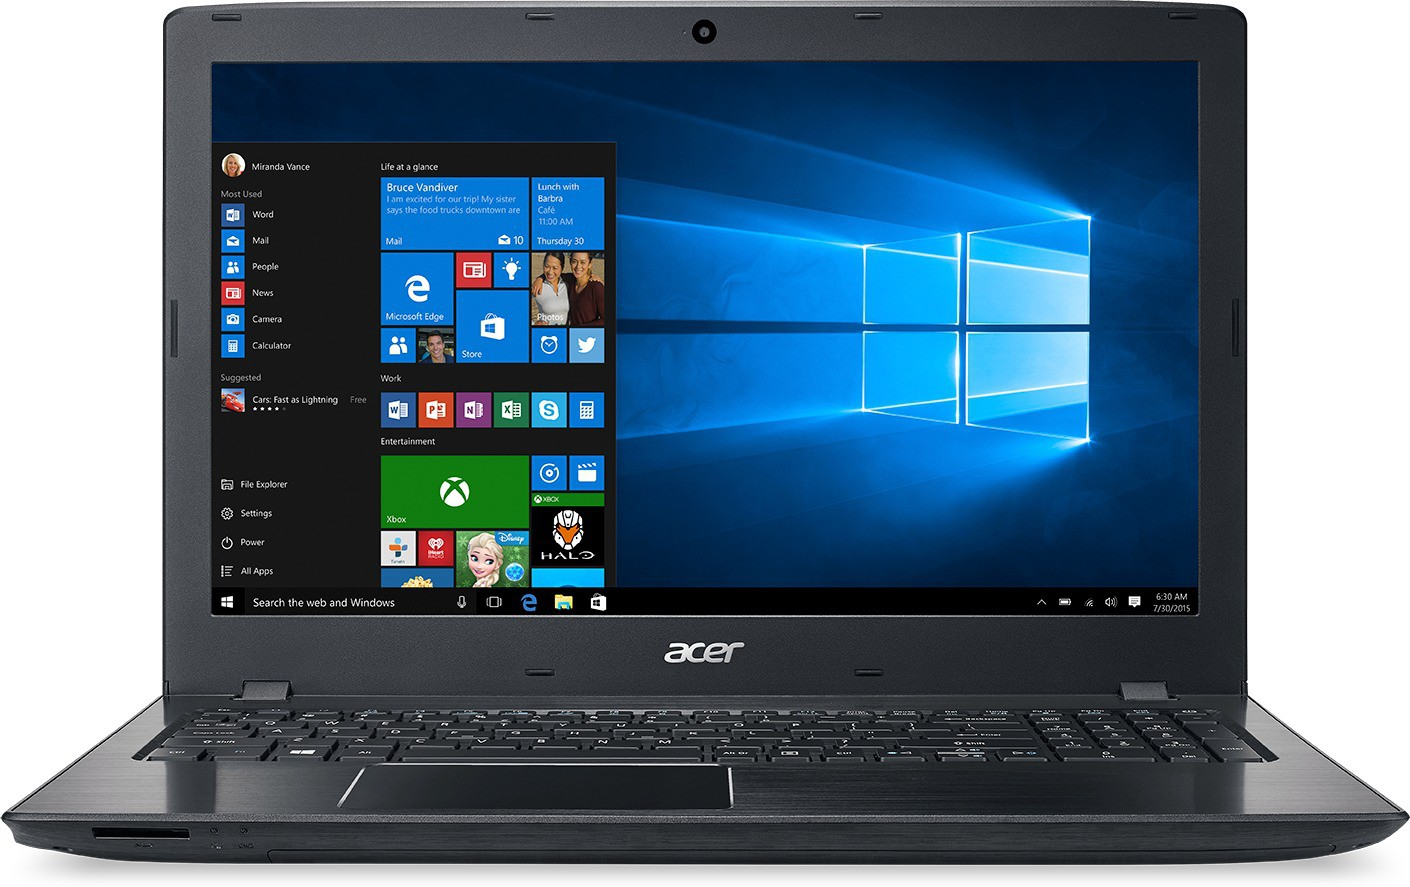 Acer Aspire Core i5 6th Gen - (4 GB/1 TB HDD/Windows 10 Home/2 GB Graphics) E5-575G Notebook(15.6 inch, Black, 2.23 kg) (Acer) Tamil Nadu Buy Online